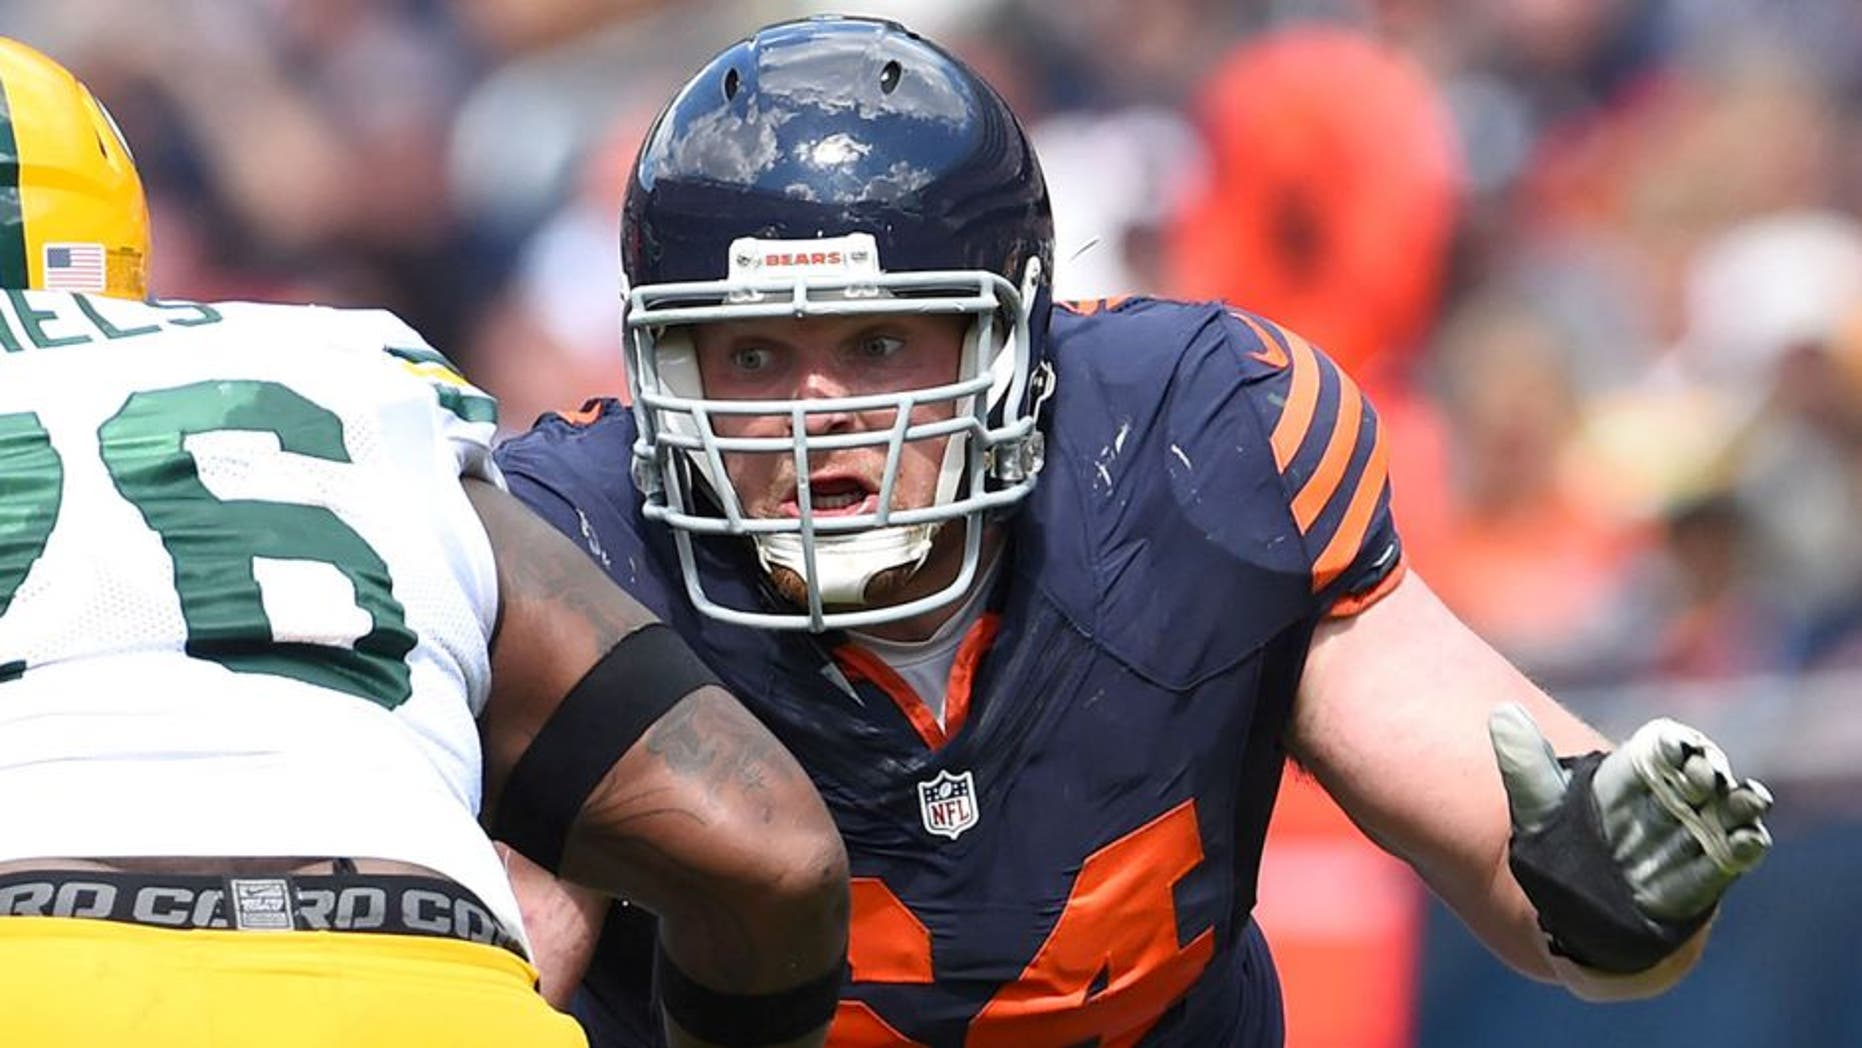 Sep 13, 2015; Chicago, IL, USA; Chicago Bears center Will Montgomery (64) during the second half at Soldier Field. Green Bay Packers defeats the Chicago Bears 31-23. Mandatory Credit: Mike DiNovo-USA TODAY Sports